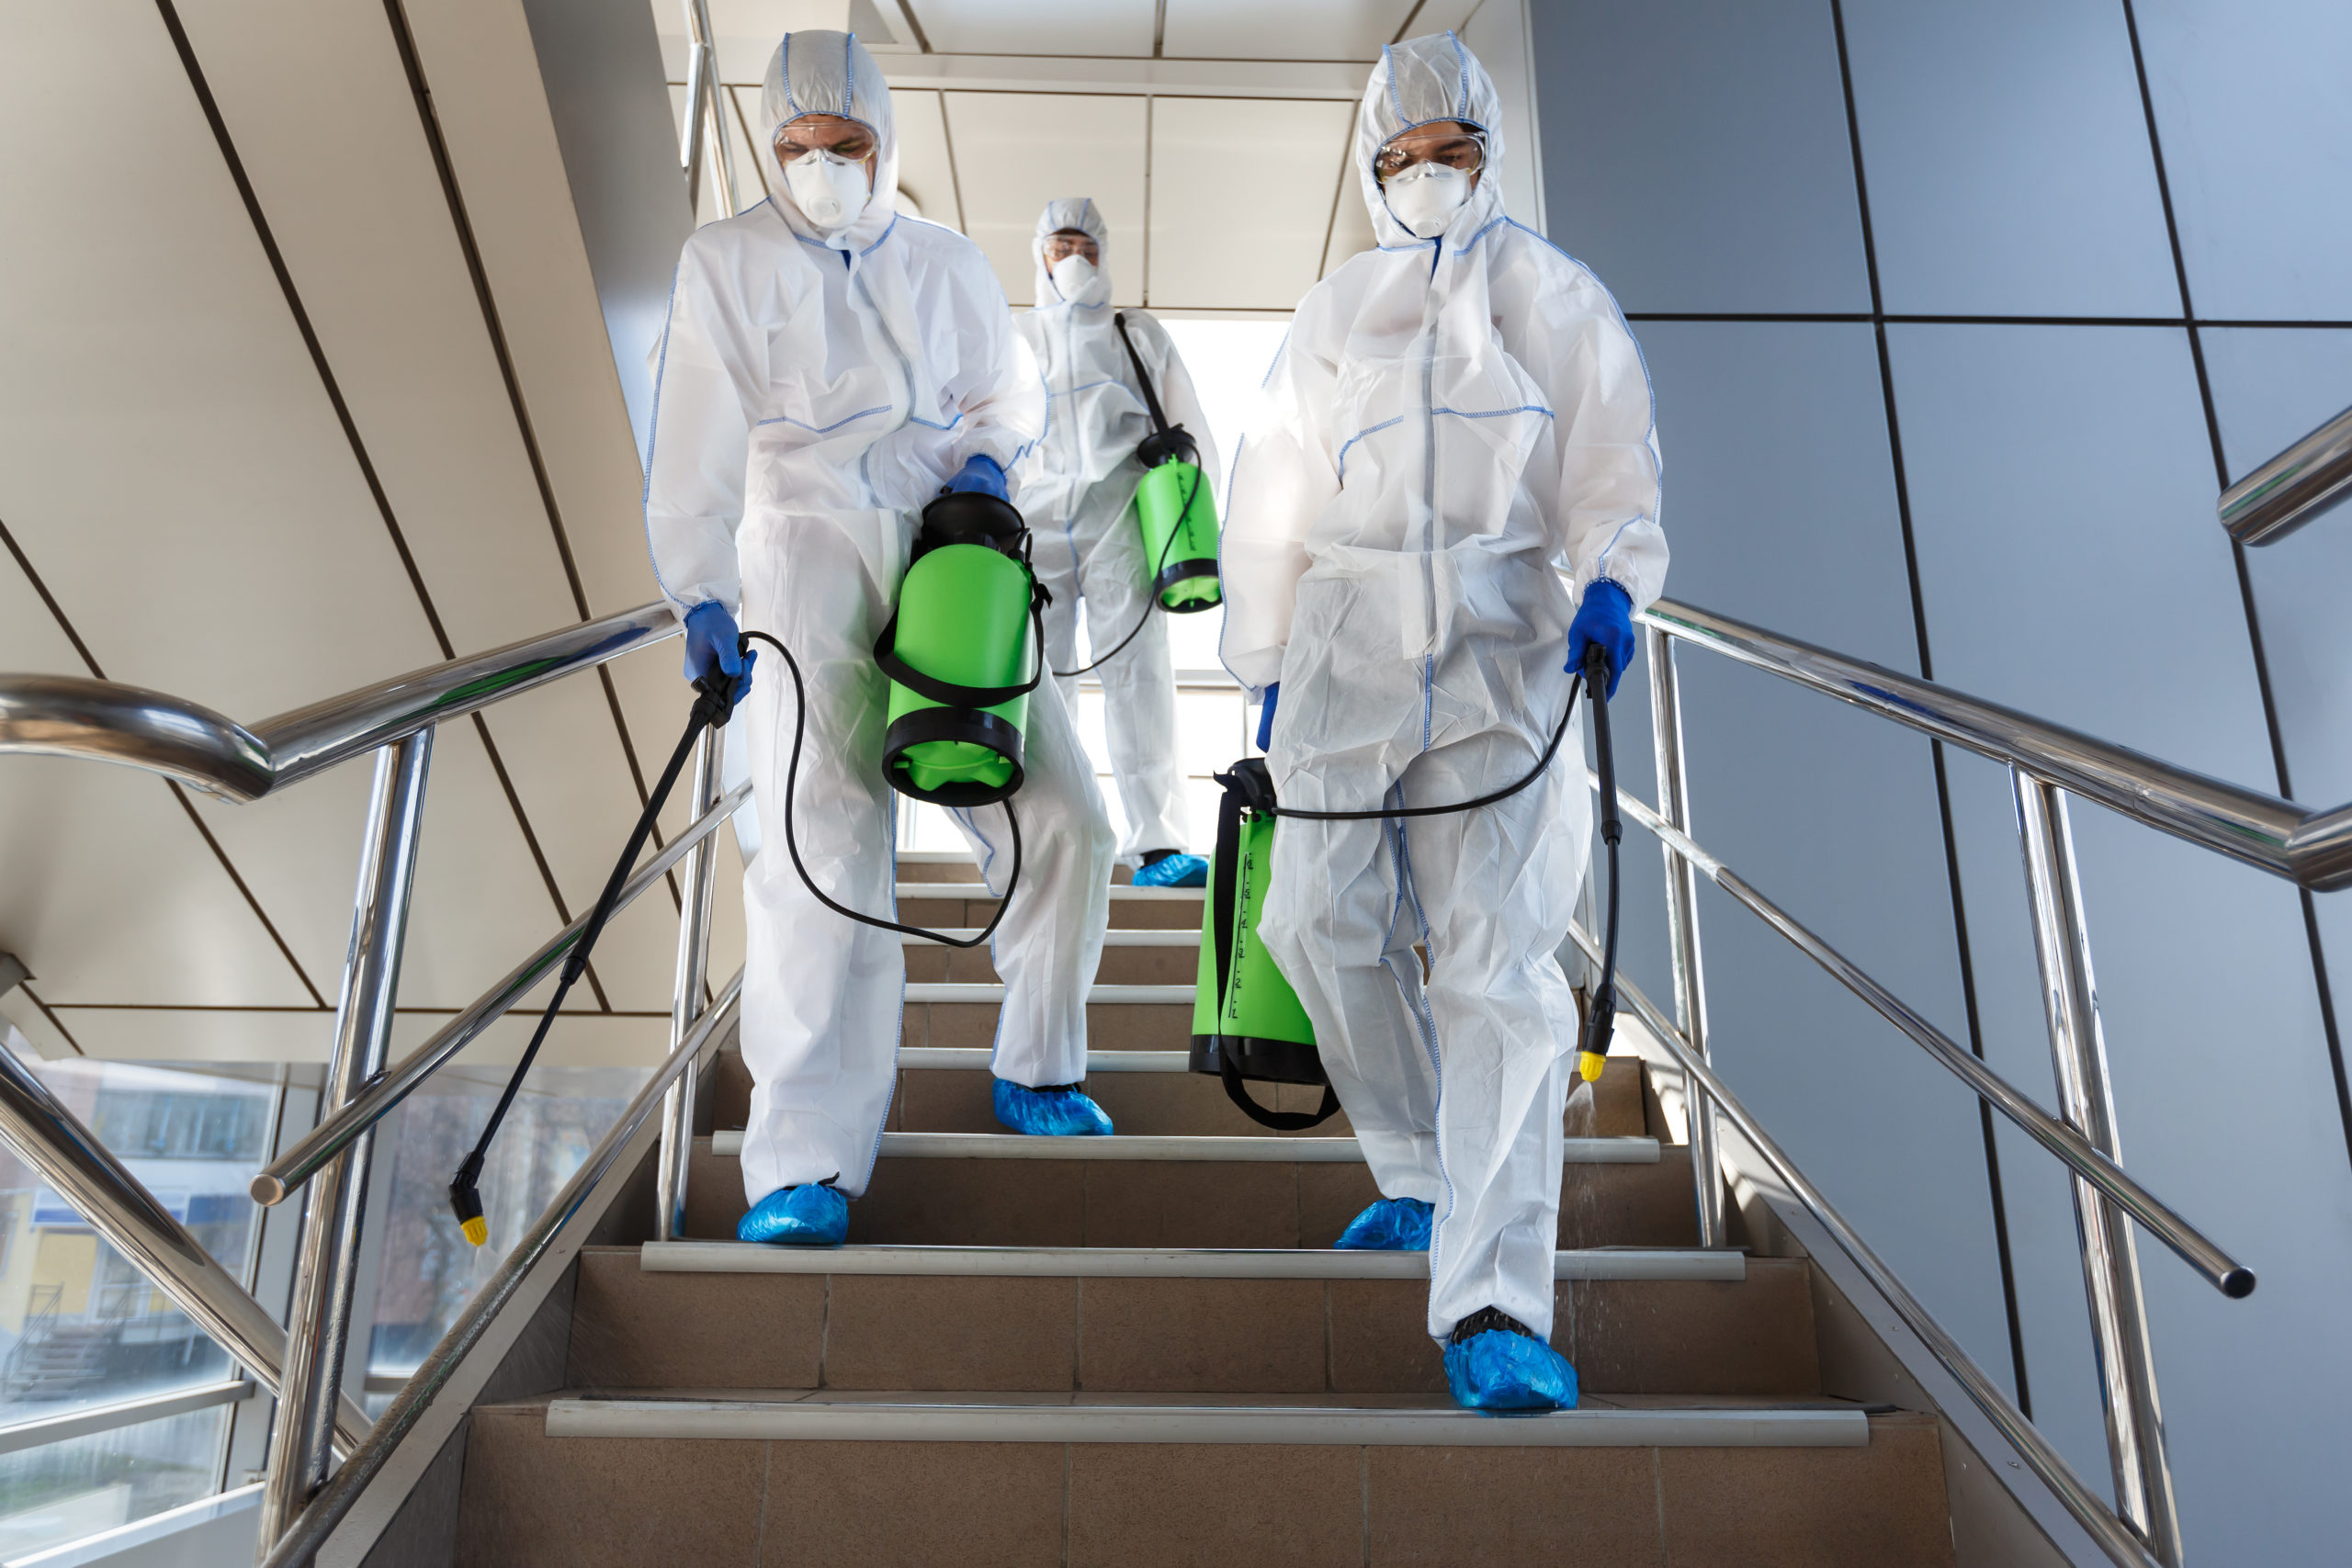 wear ppe to avoid contamination in the workplace